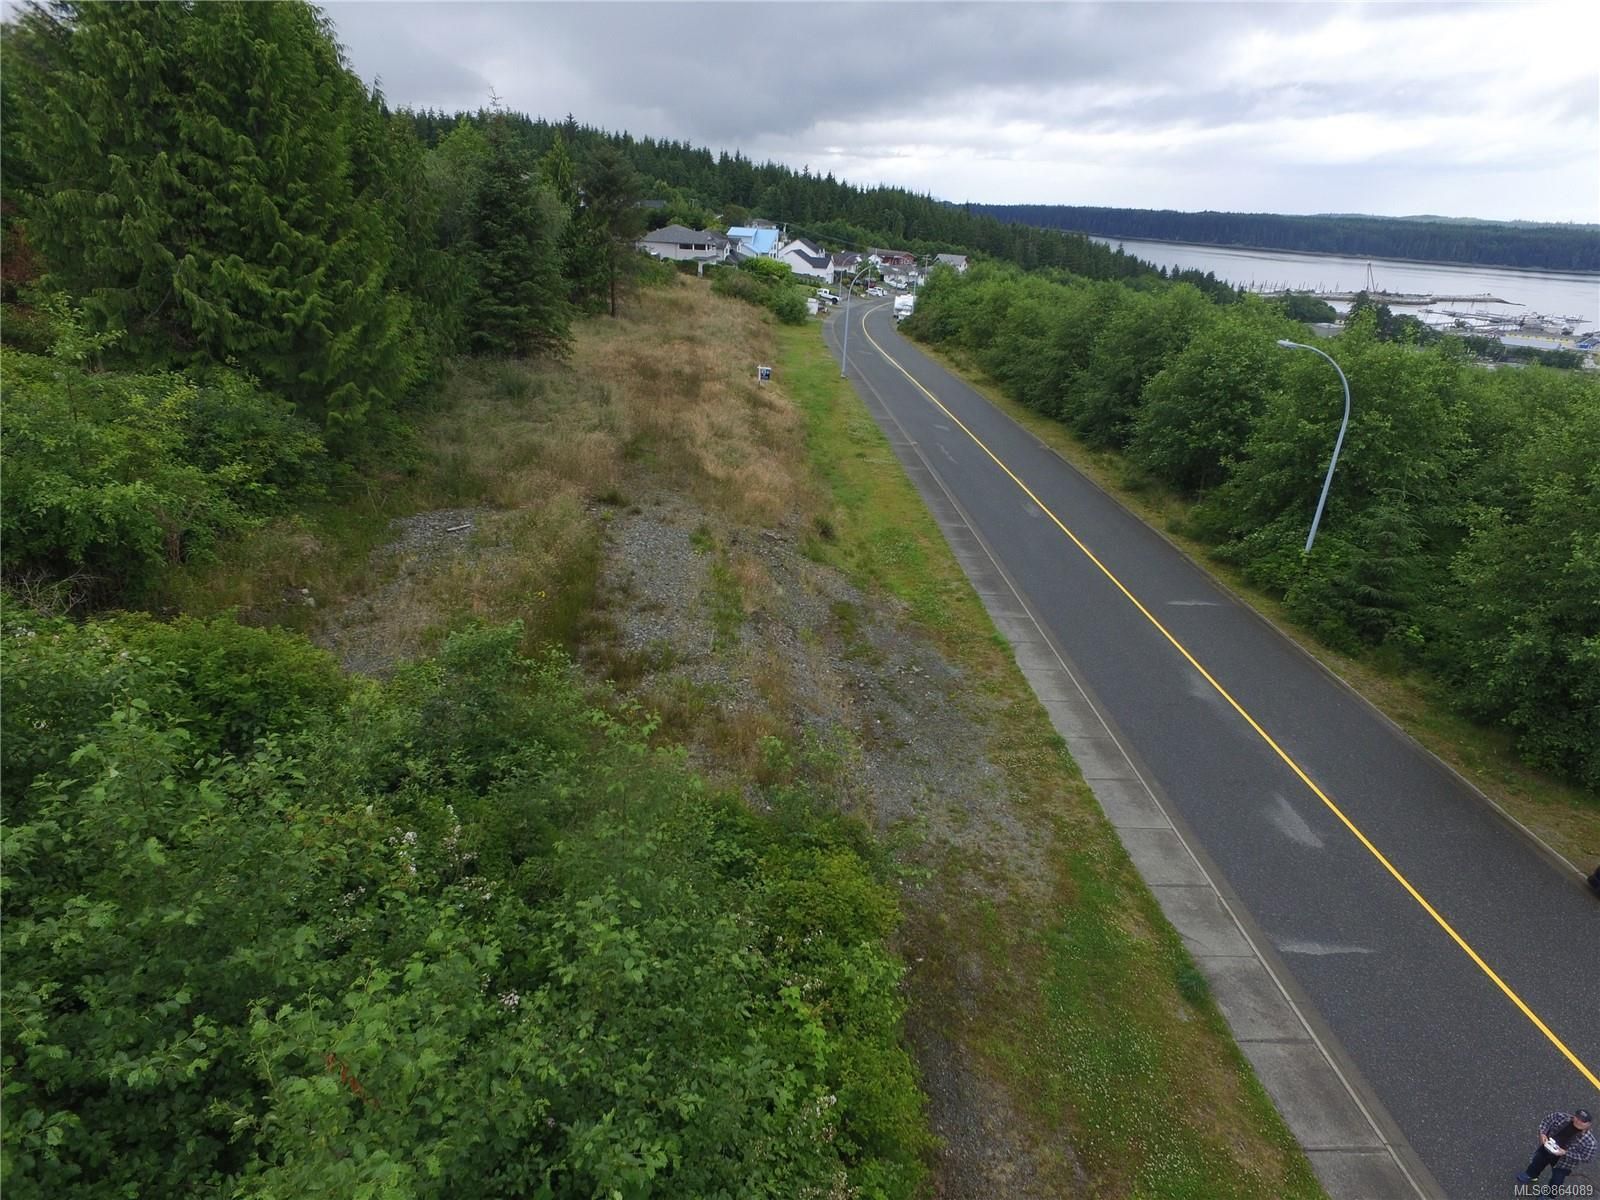 Main Photo: 2055 Pioneer Hill Dr in : NI Port McNeill Land for sale (North Island)  : MLS®# 864089